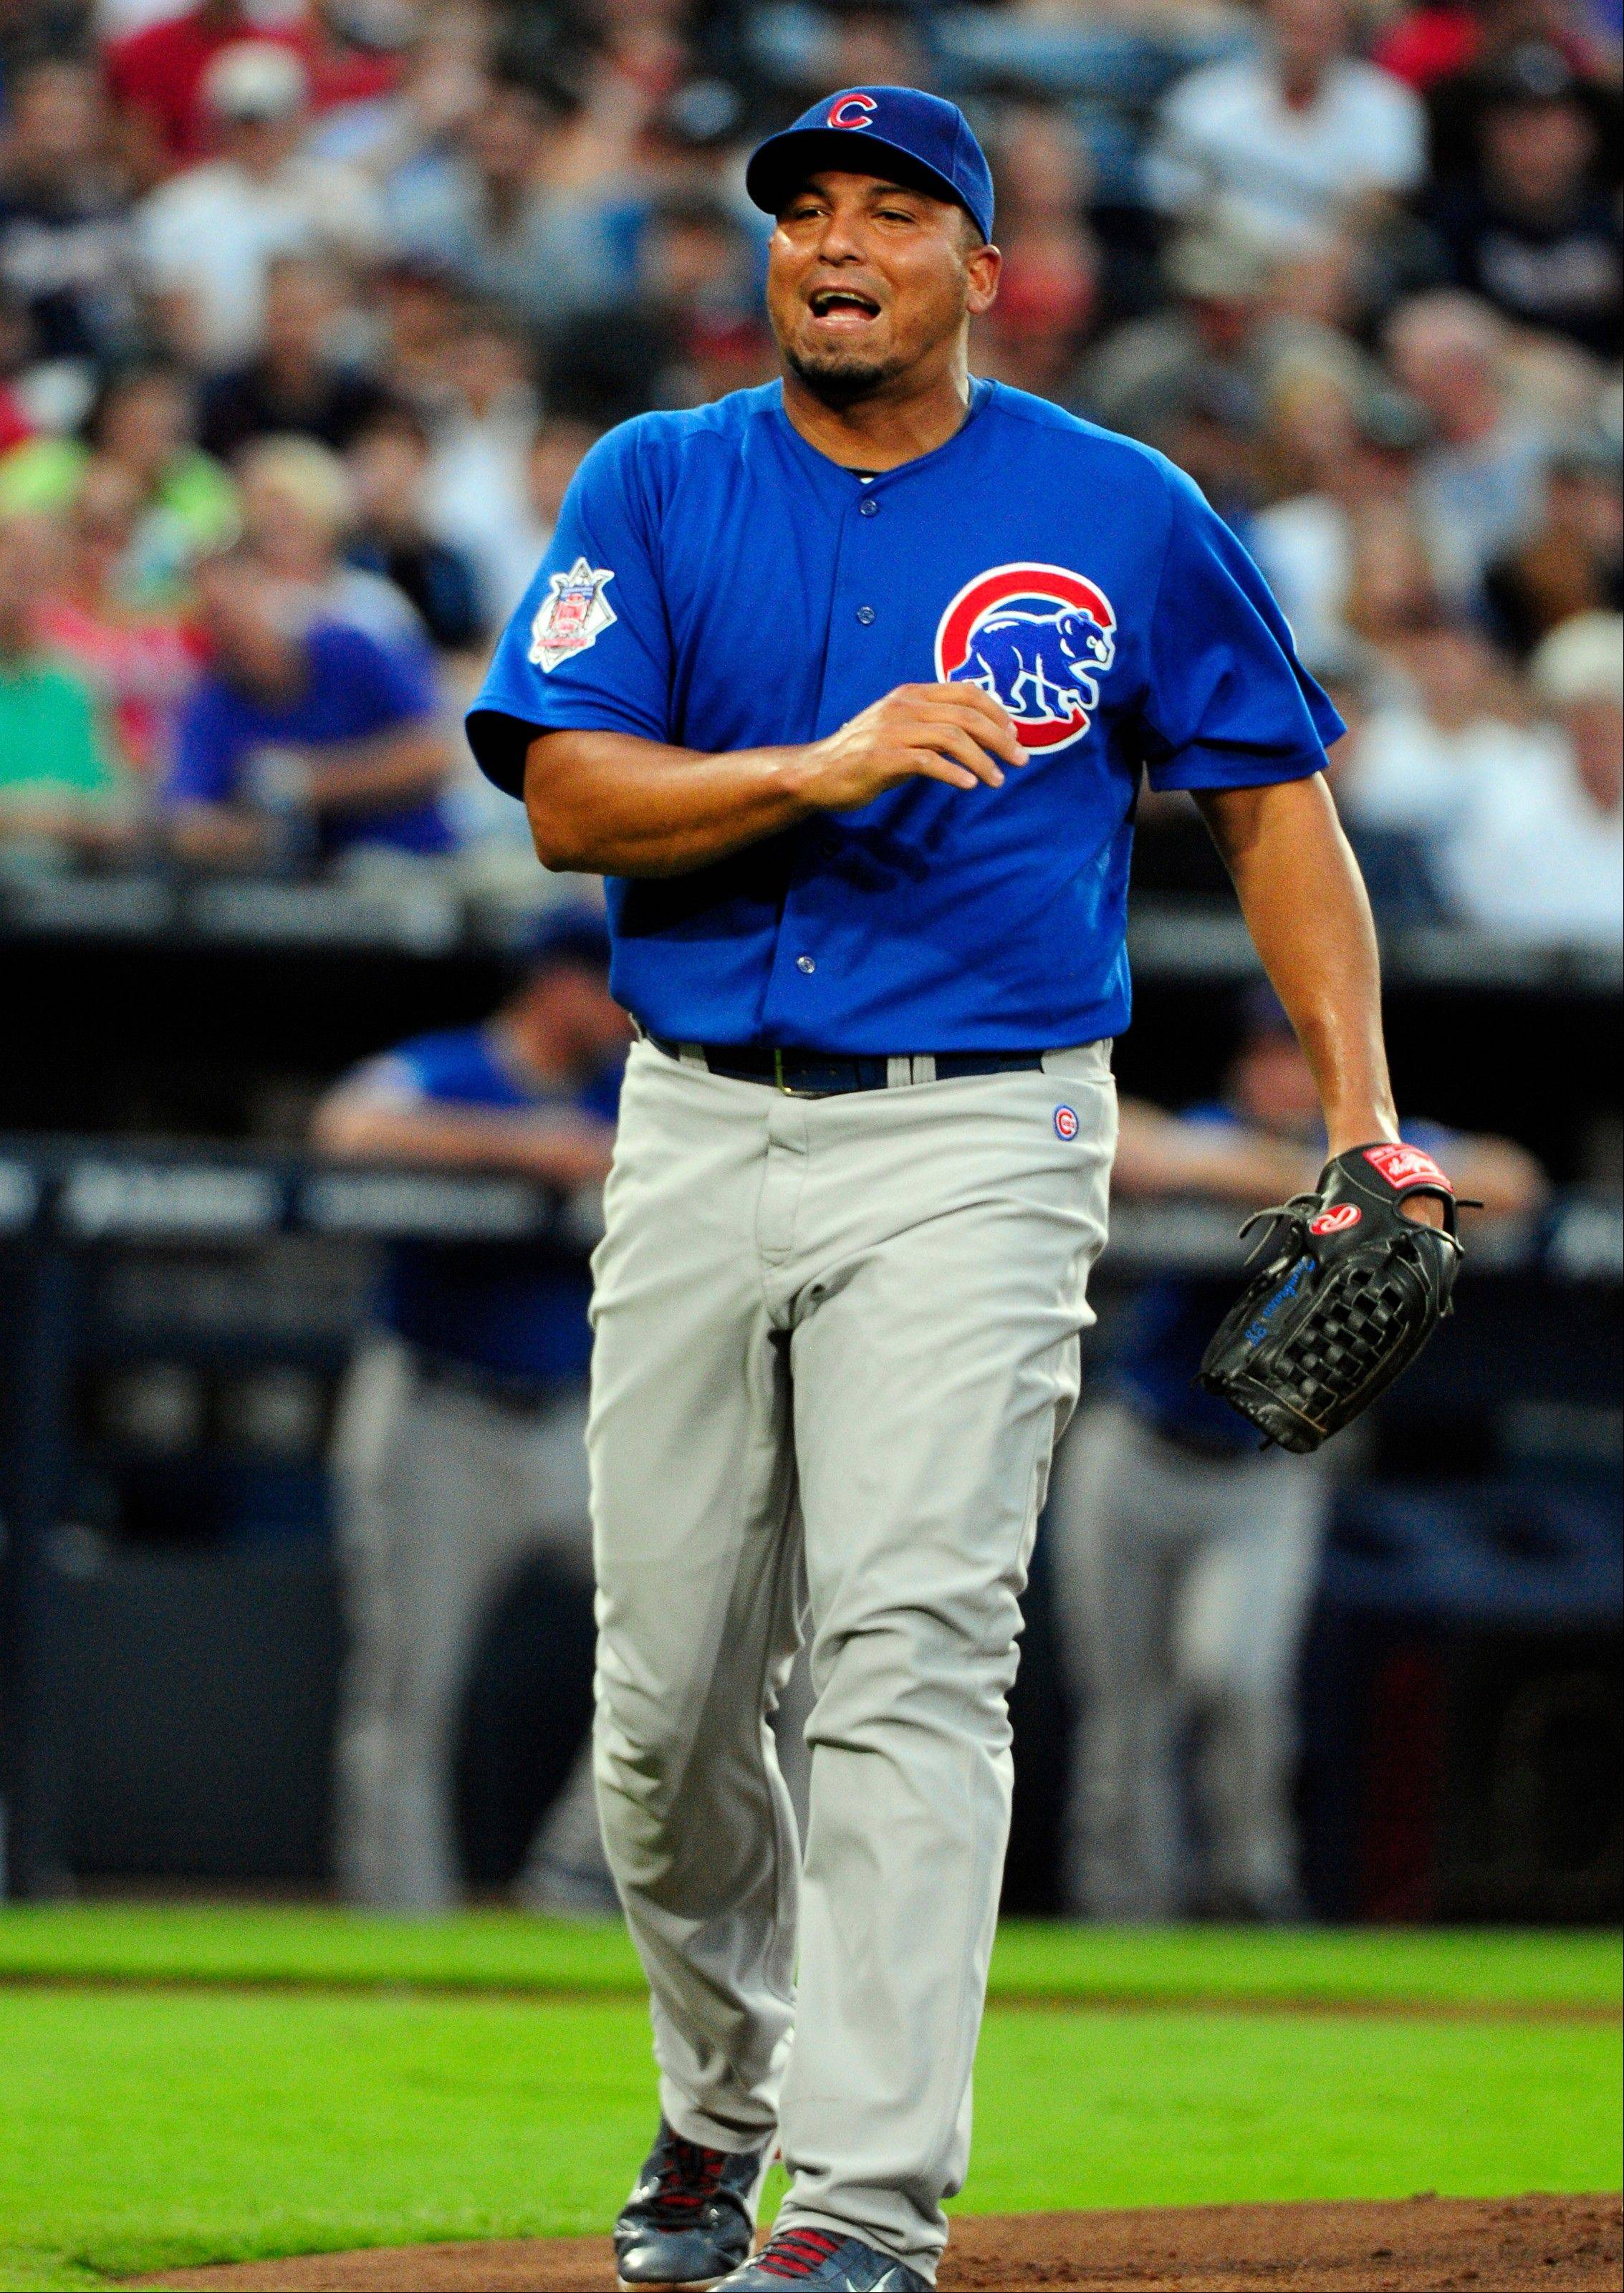 The Cubs placed pitcher Carlos Zambrano on MLB's disqualified list, which shuts him down for 30 days without pay while his comments and actions from Friday's game in Atlanta are reviewed. Zambrano left the game — and the Cubs — after giving up 5 home runs.